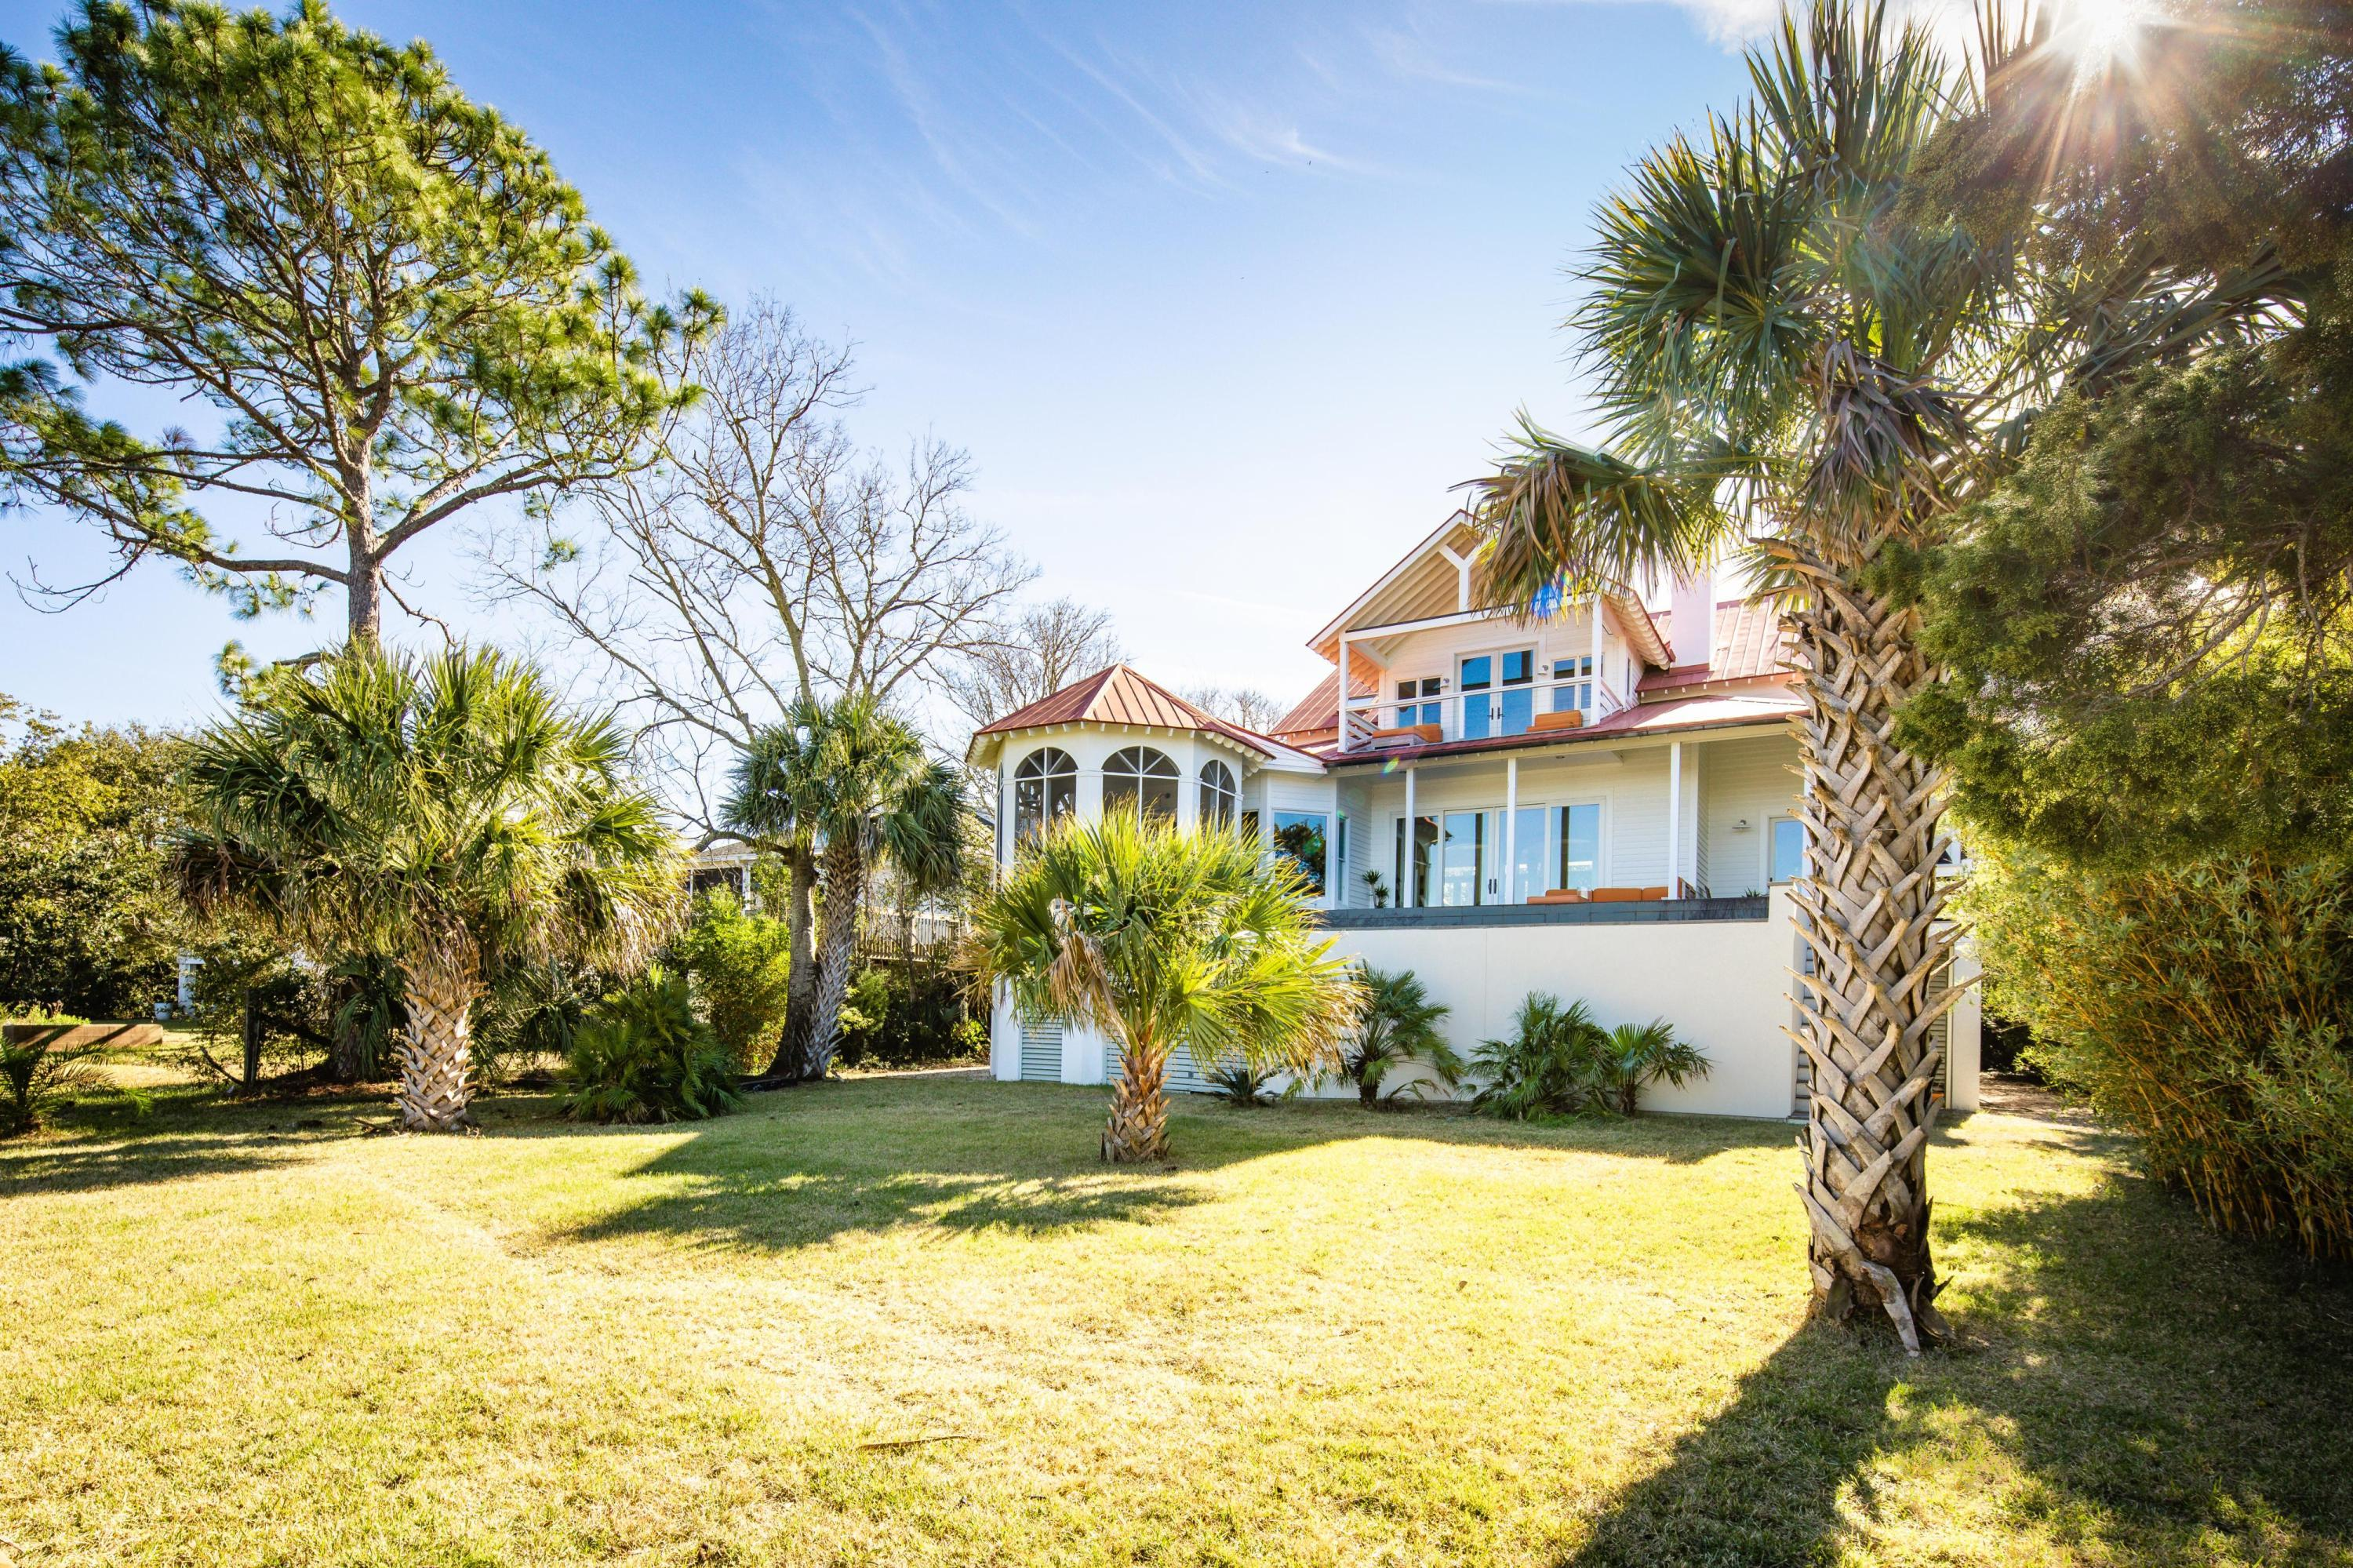 Sullivans Island Homes For Sale - 1734 Thompson, Sullivans Island, SC - 3